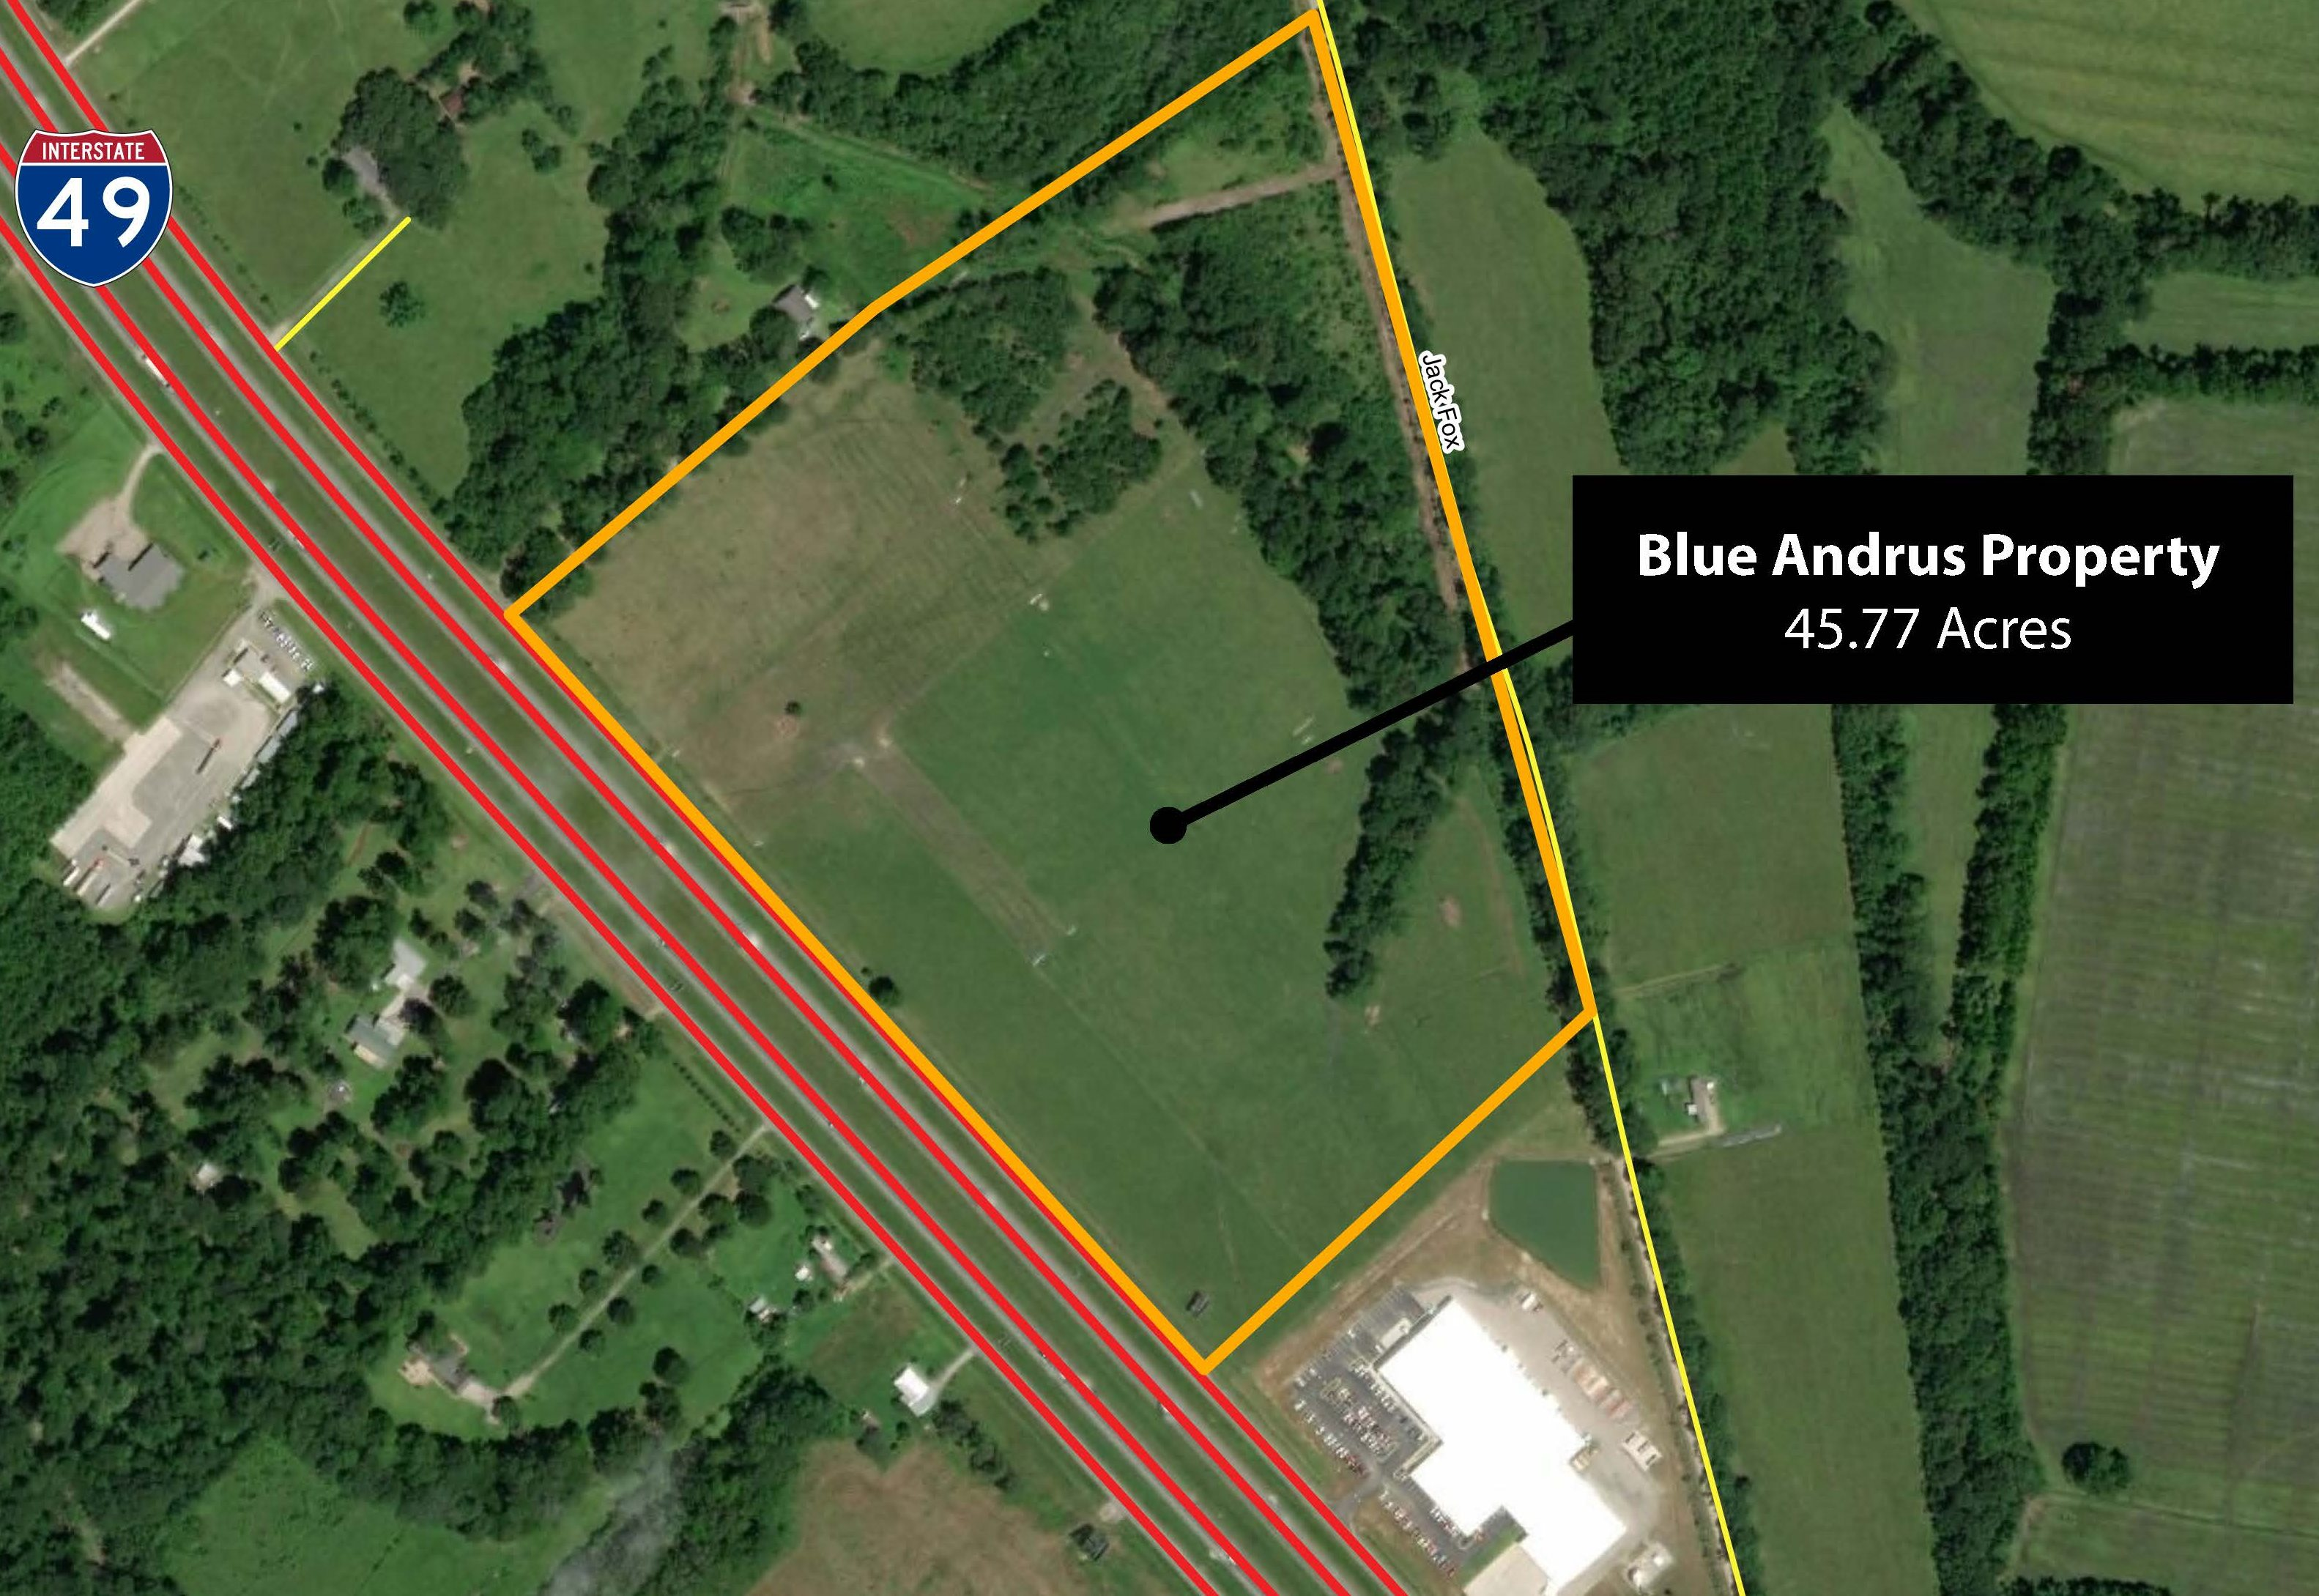 Blue Andrus Property Aerial